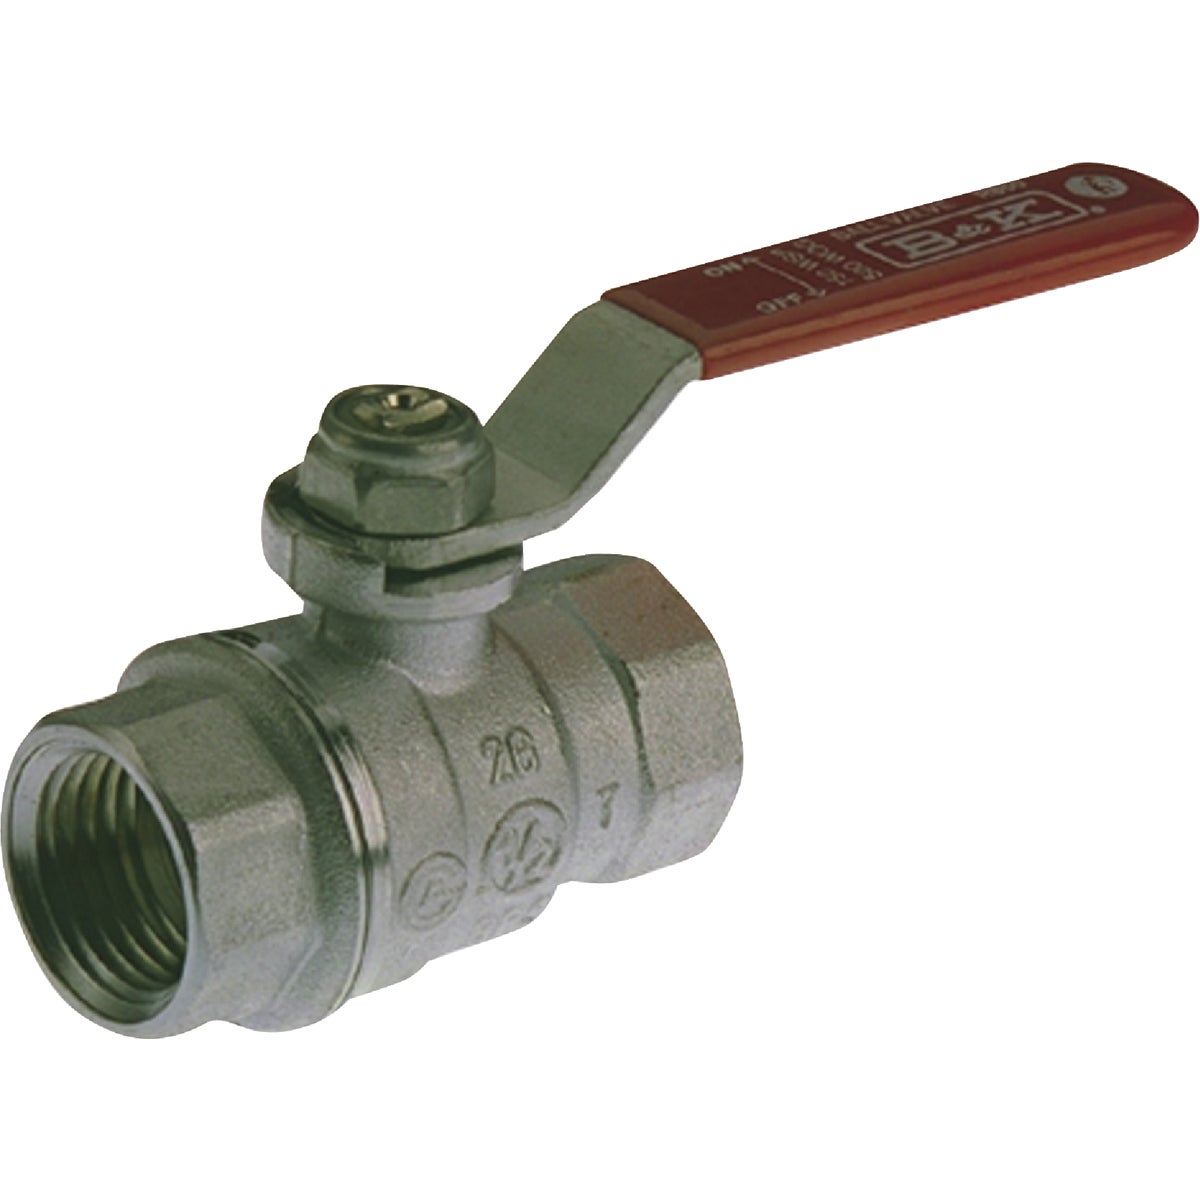 "1"" FIP CHROME BALL VALVE - 107-005NL by Mueller B K"